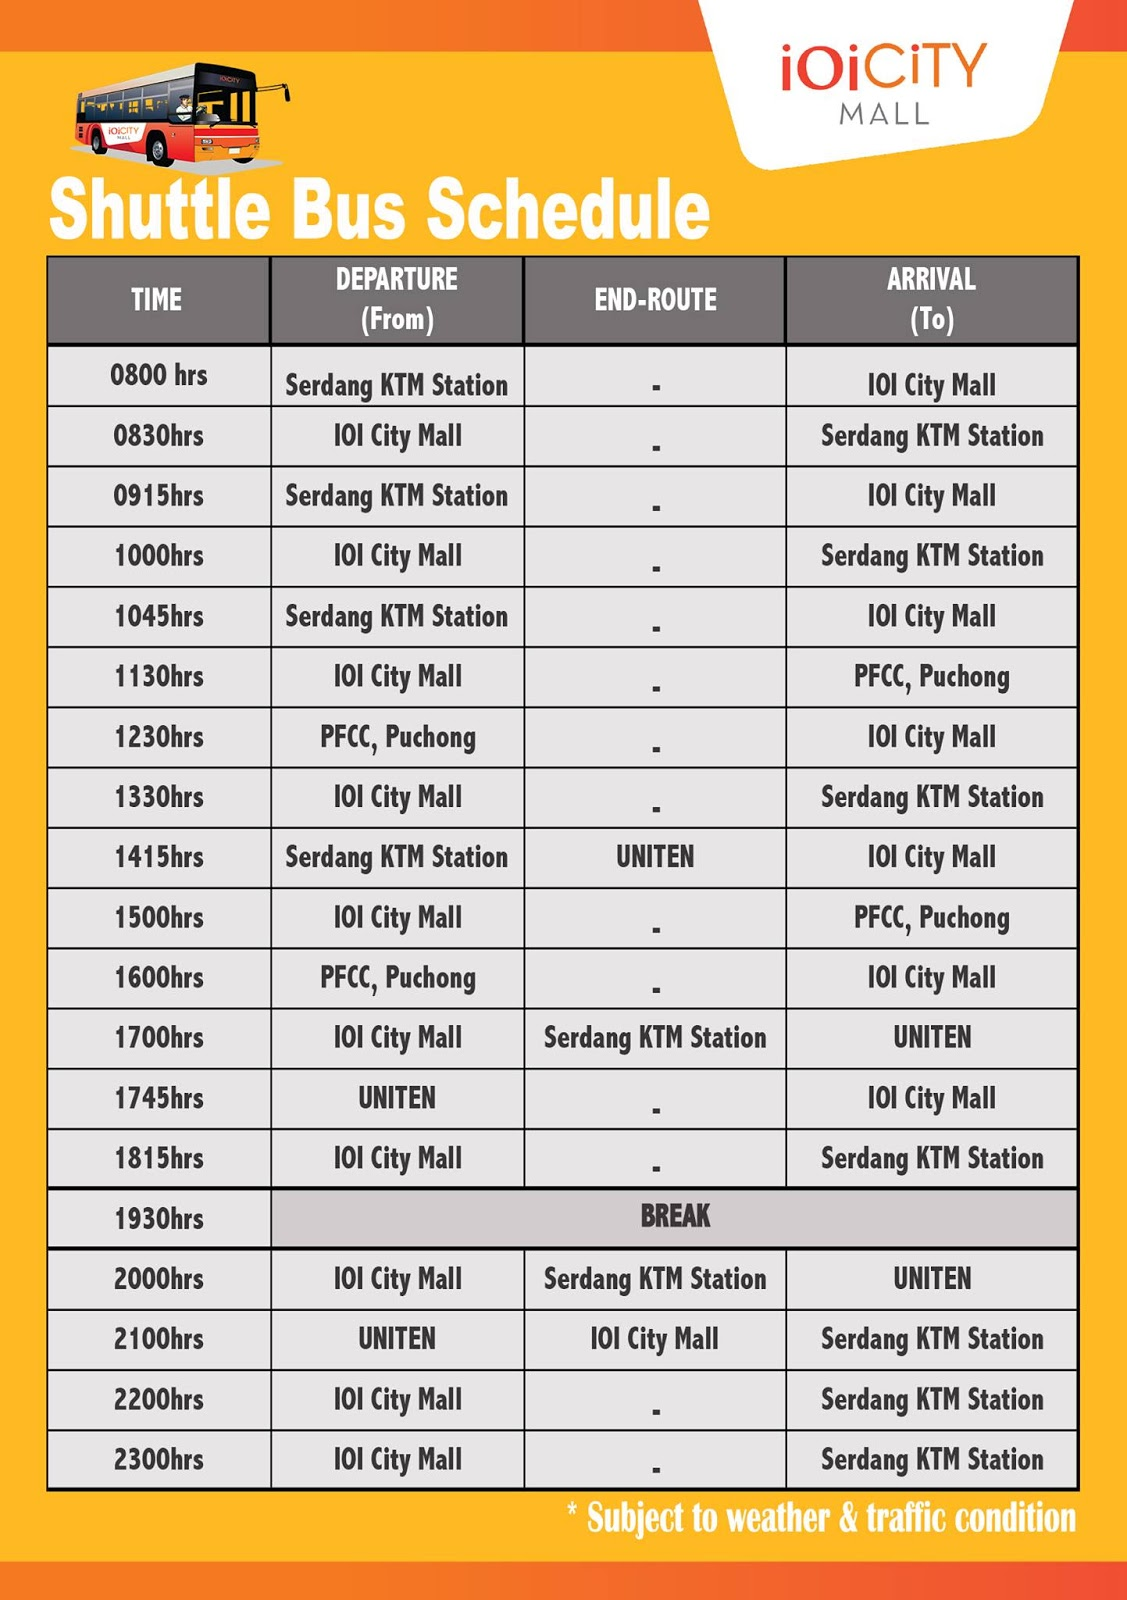 IOI City Mall Shuttle Bus Schedule (Serdang KTM Station - IOI City Mall)